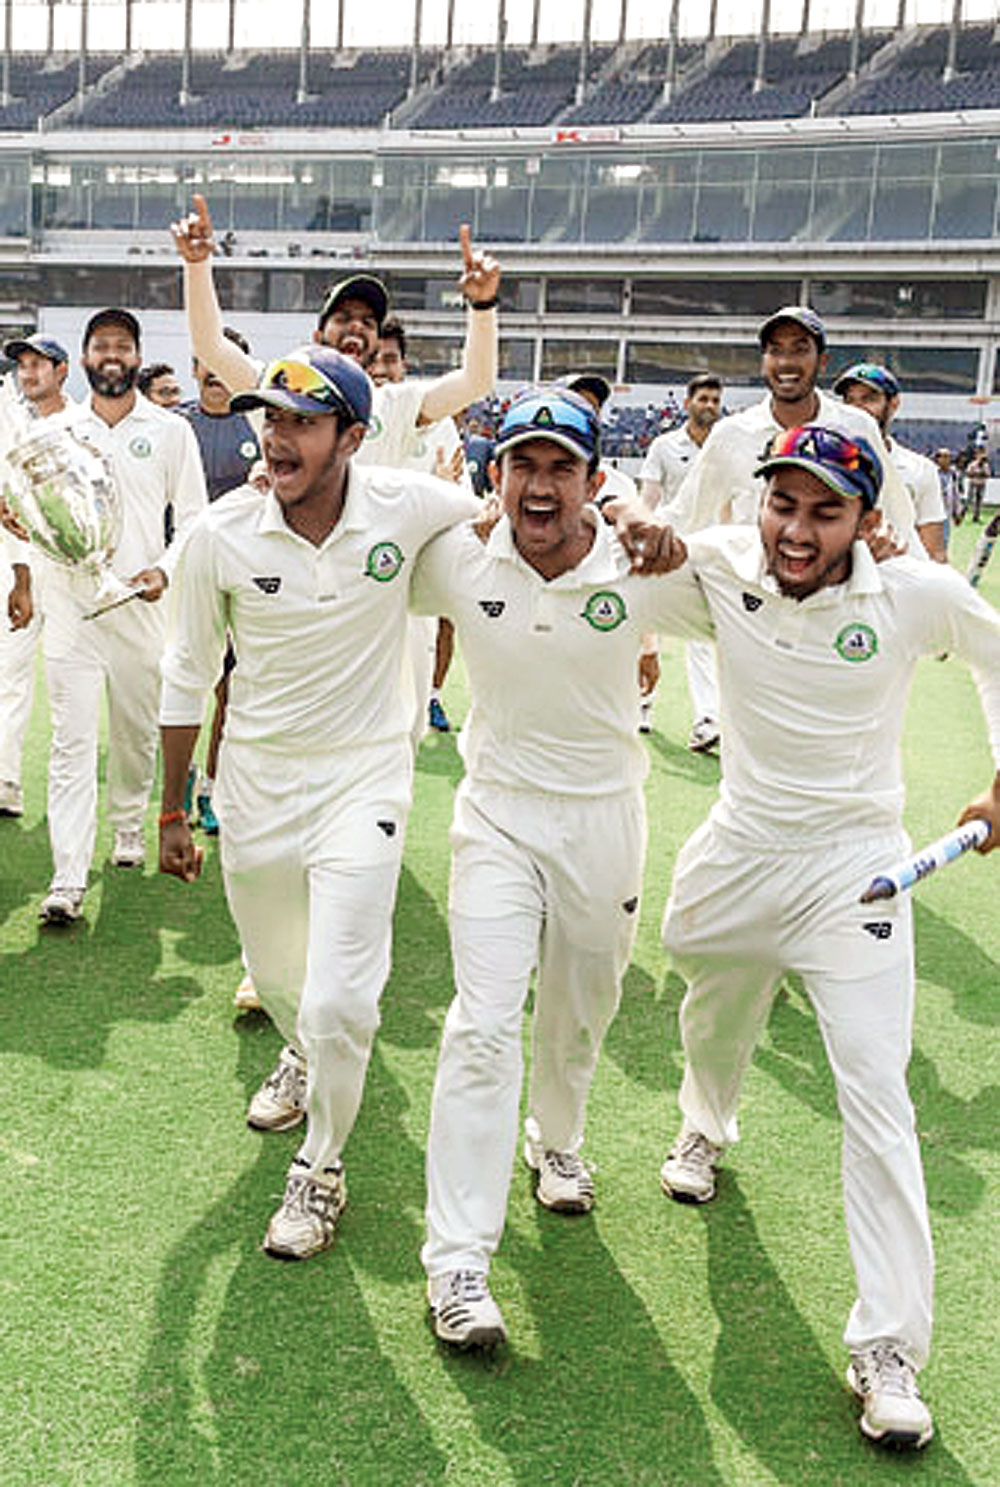 A force to reckon with: Defendng champions Vidarbha won the 85th Ranji Trophy title, beating Saurashtra by 78 runs in the summit clash